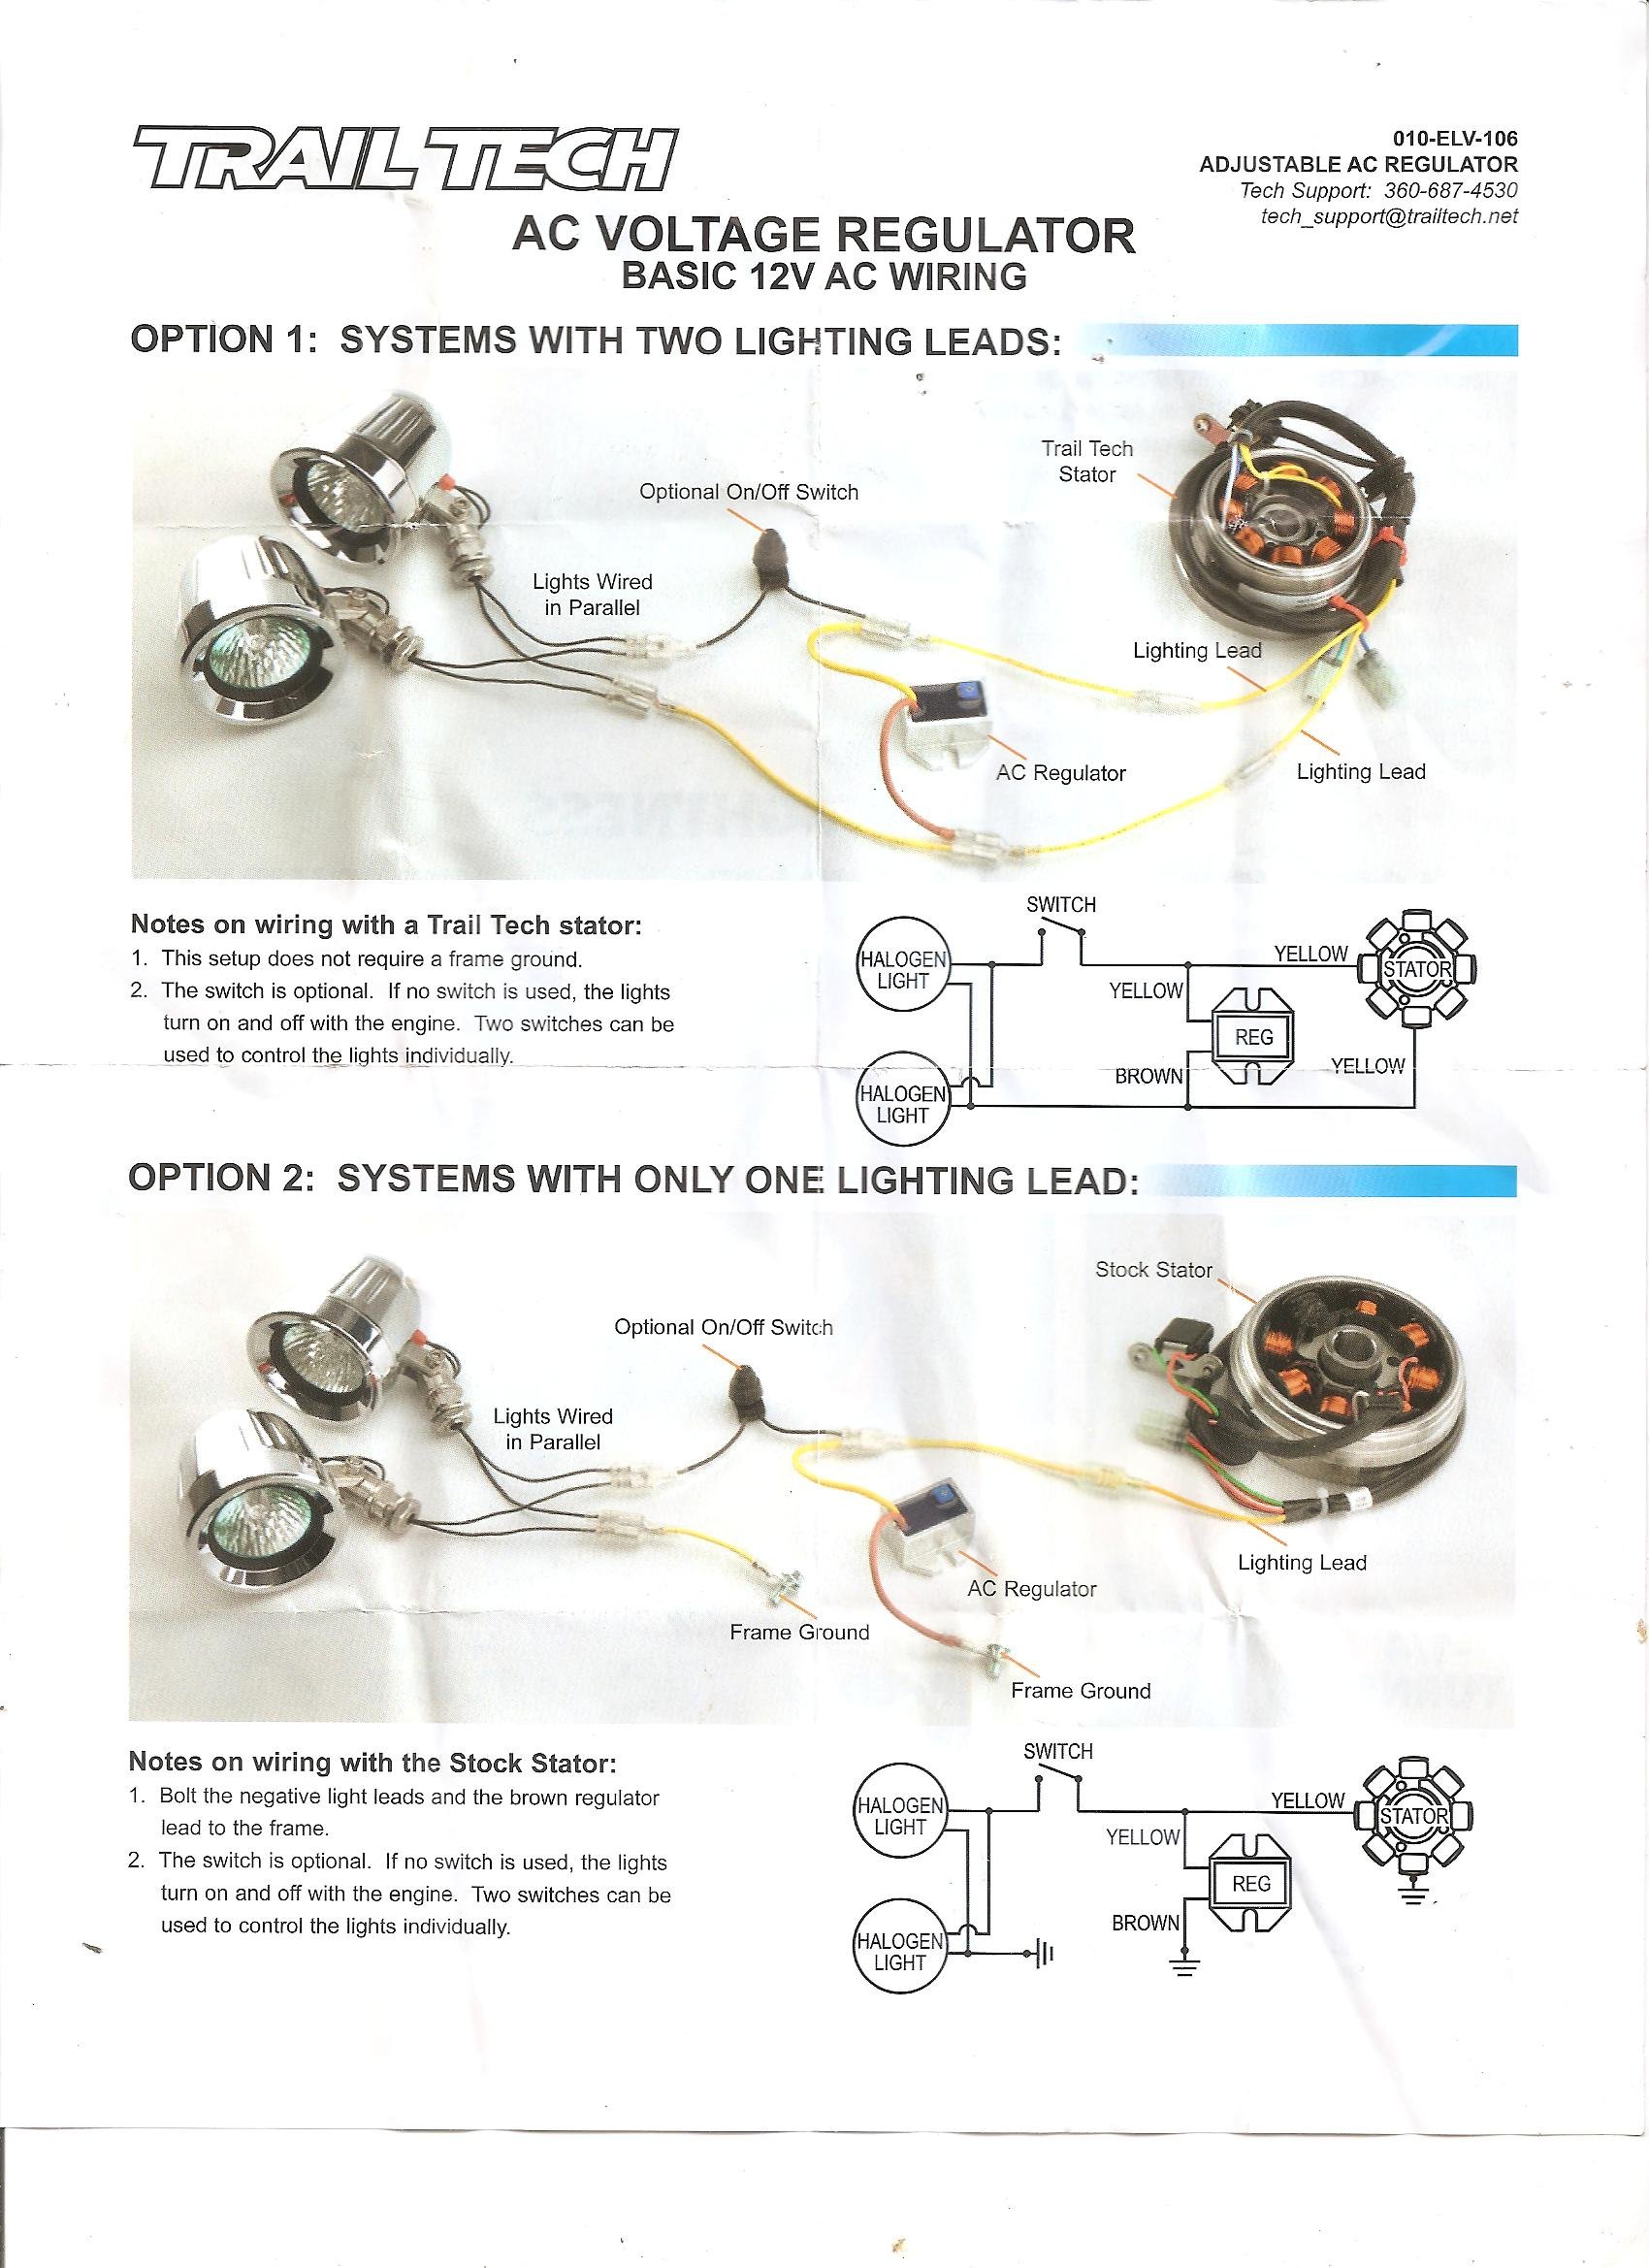 z50 K2 and Lifan 125 Wiring Trail Master Lights Switch Wiring Diagrams on 2 switch 2 lights wiring diagram, light two switches one light diagram, two-way switch diagram, how does a 3 way switch work diagram, two lights one switch diagram, light switch double pole diagram, 2 lights 2 switches diagram, 2 switches 1 light diagram, 1 switch 3 lights wiring diagram,